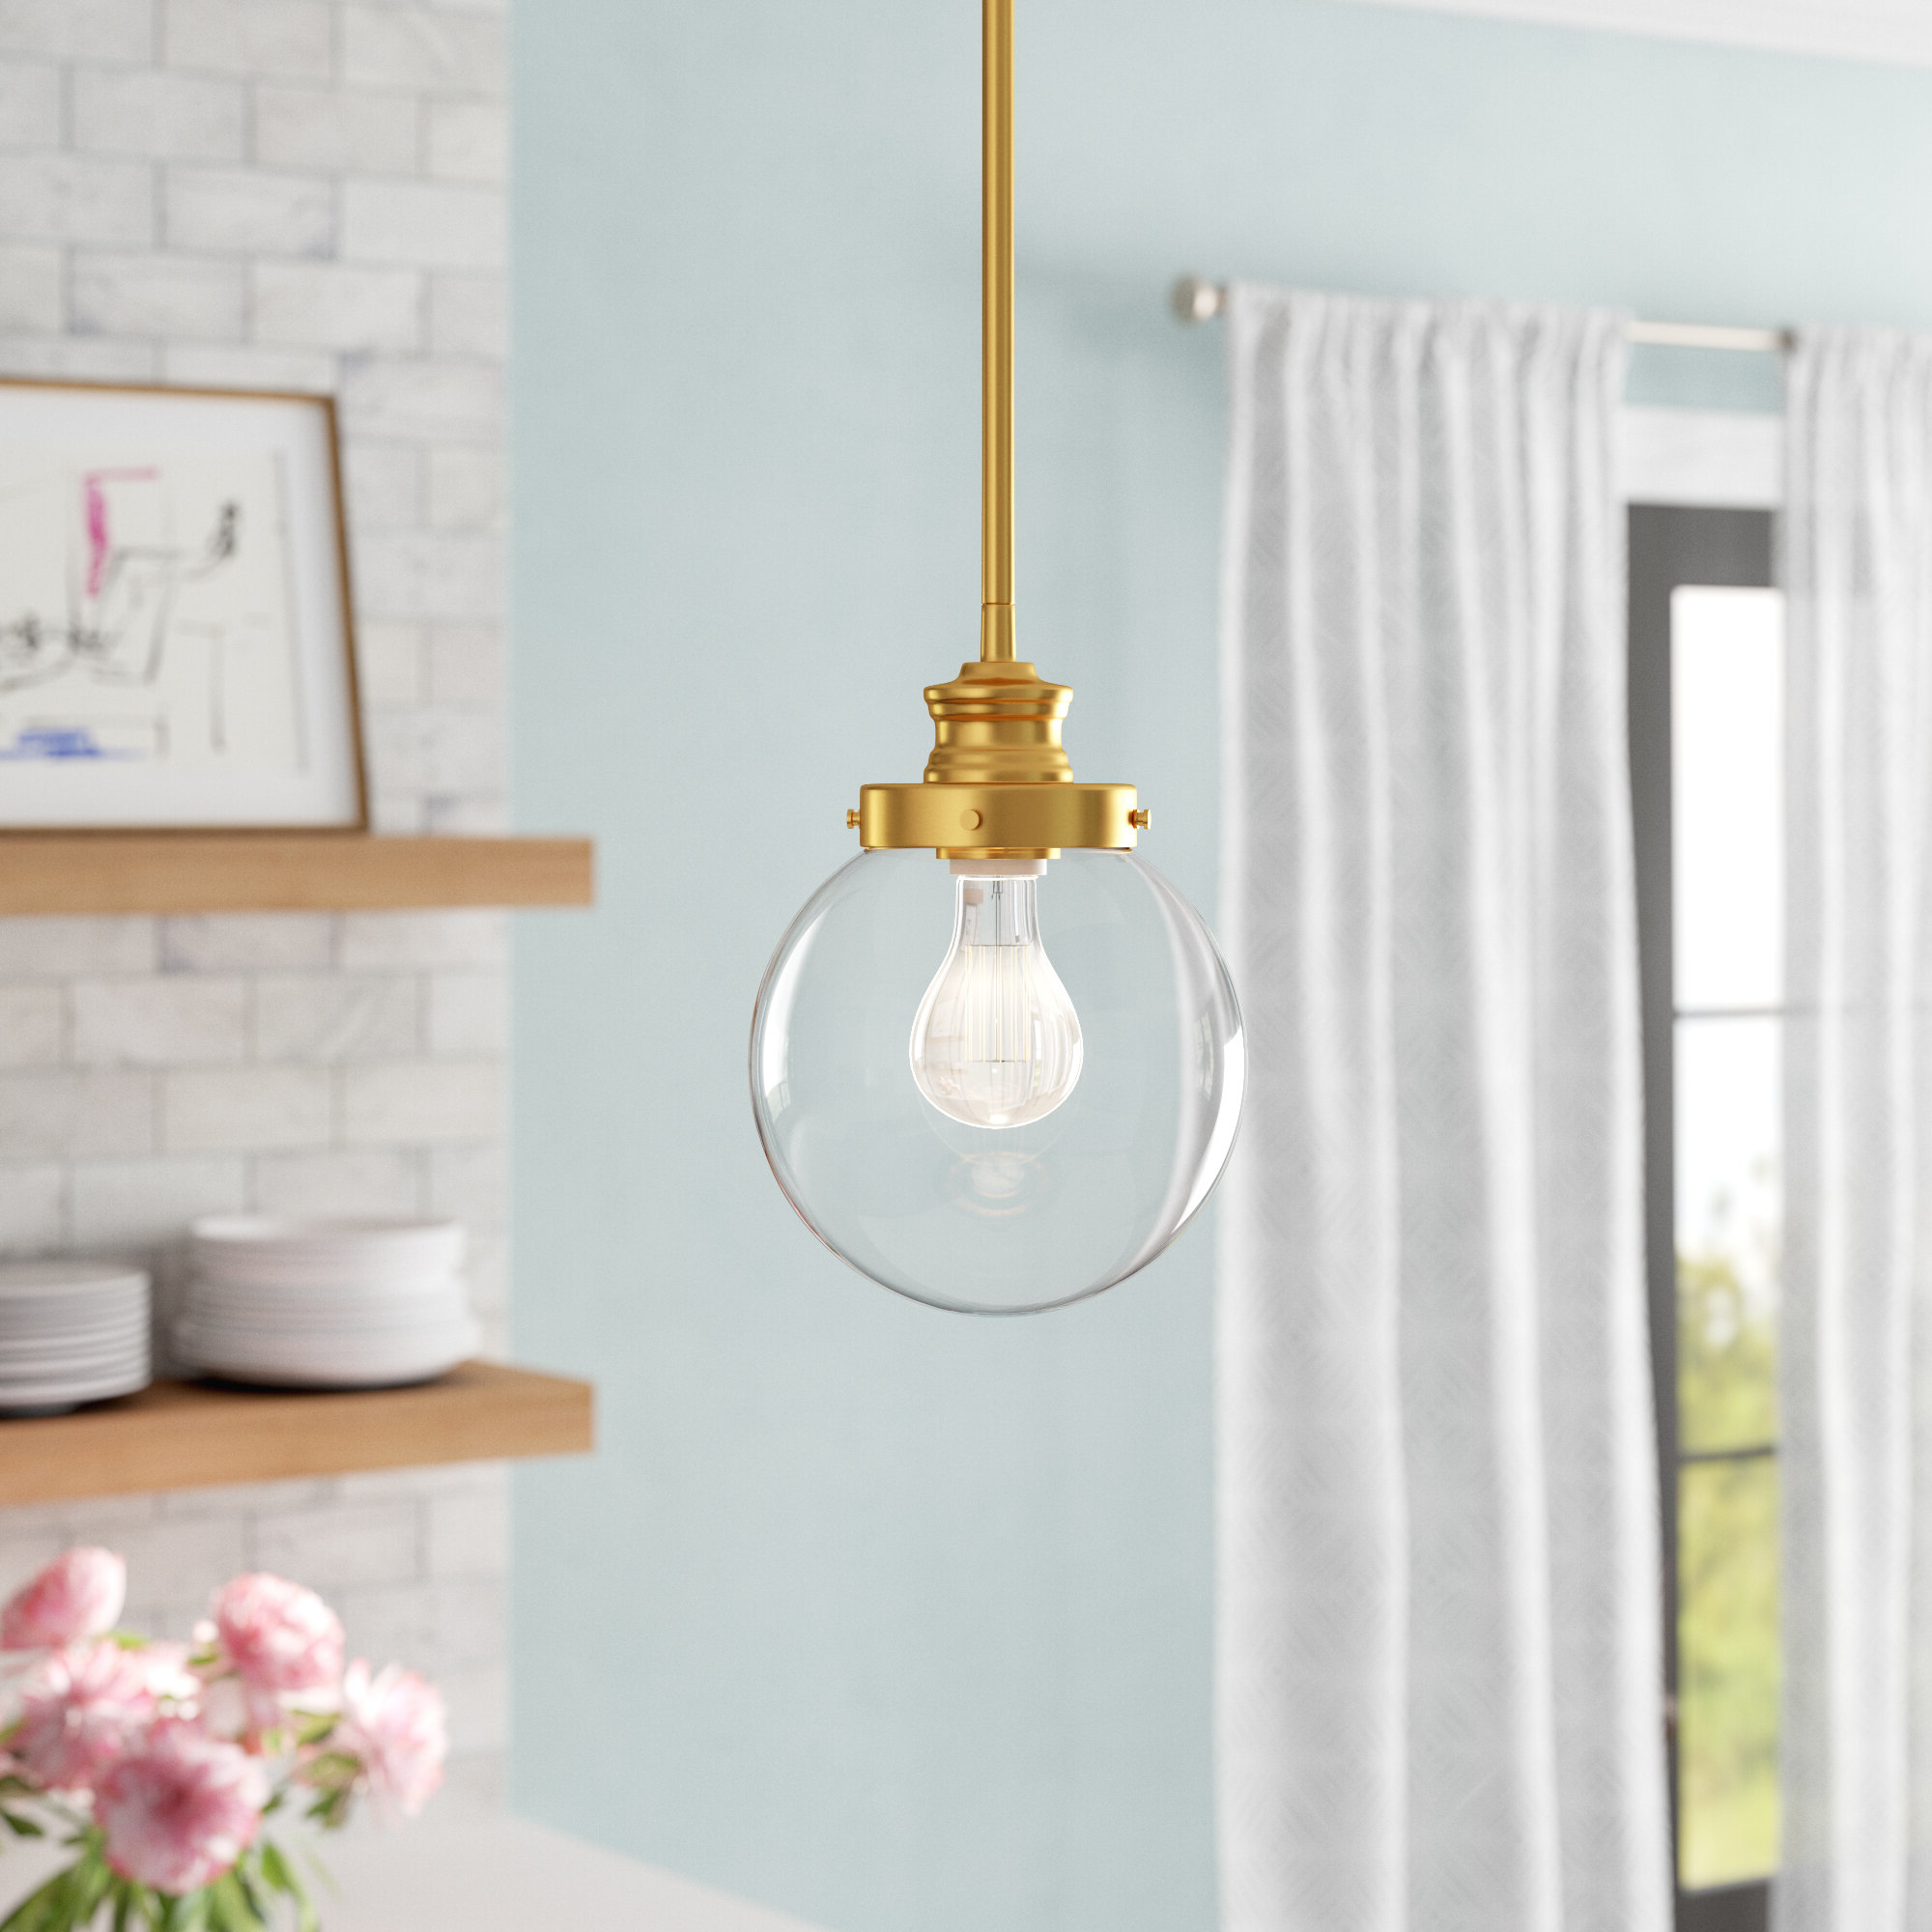 2019 Bautista 1 Light Single Globe Pendants With Regard To Cayden 1 Light Single Globe Pendant (View 1 of 25)